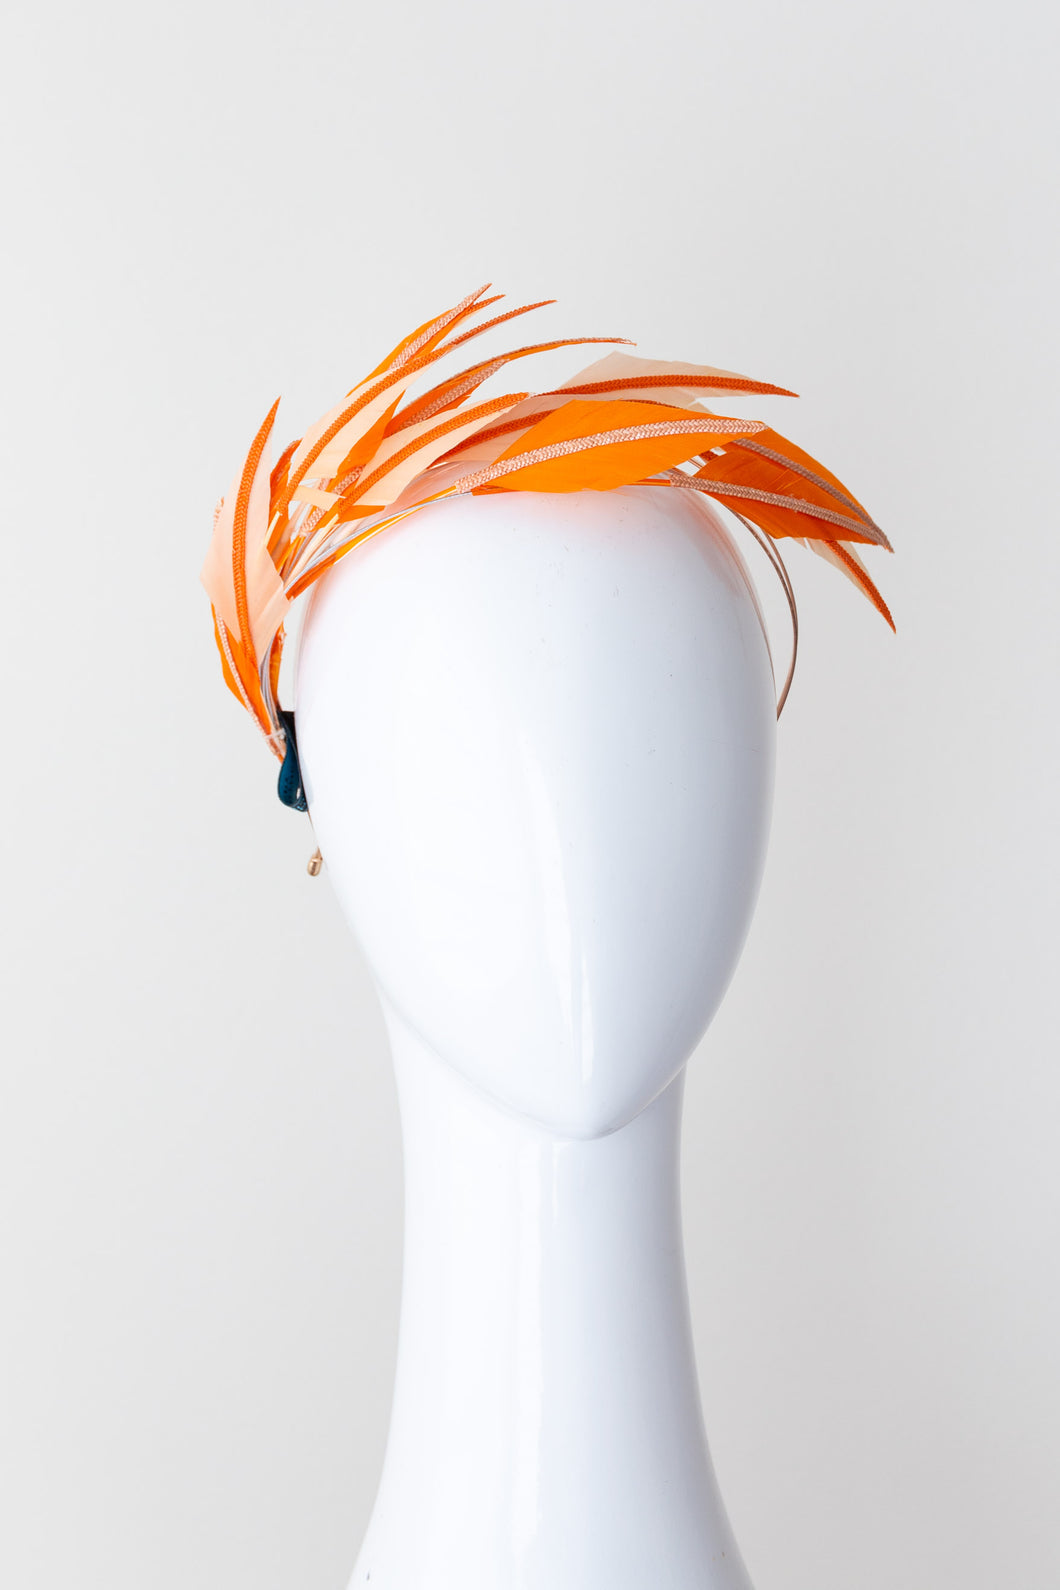 Two toned feather flowing headband, orange